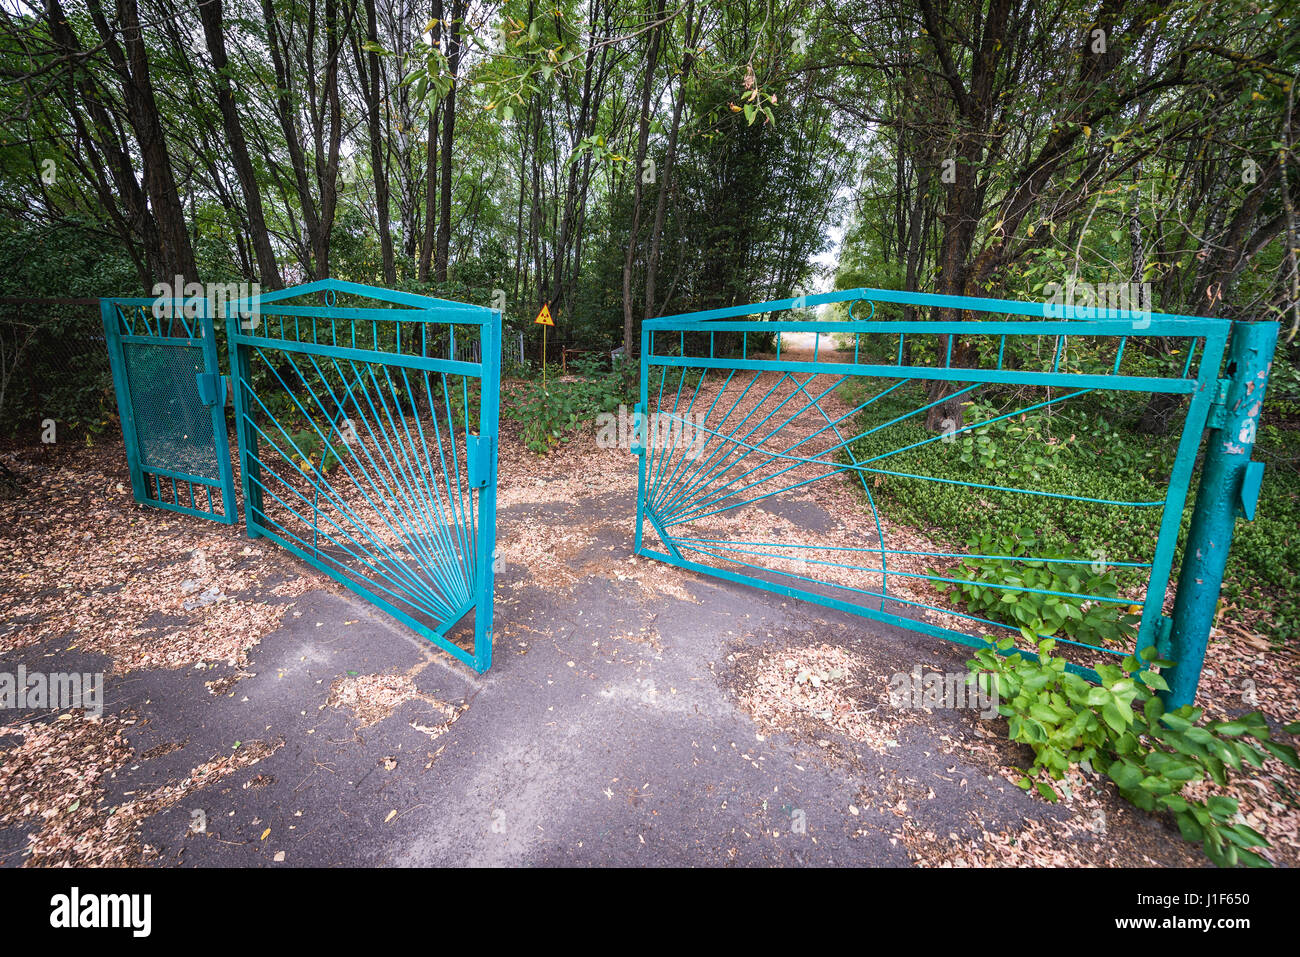 Gate of cemetery in Pripyat ghost city of Chernobyl Nuclear Power Plant Zone of Alienation around nuclear reactor - Stock Image